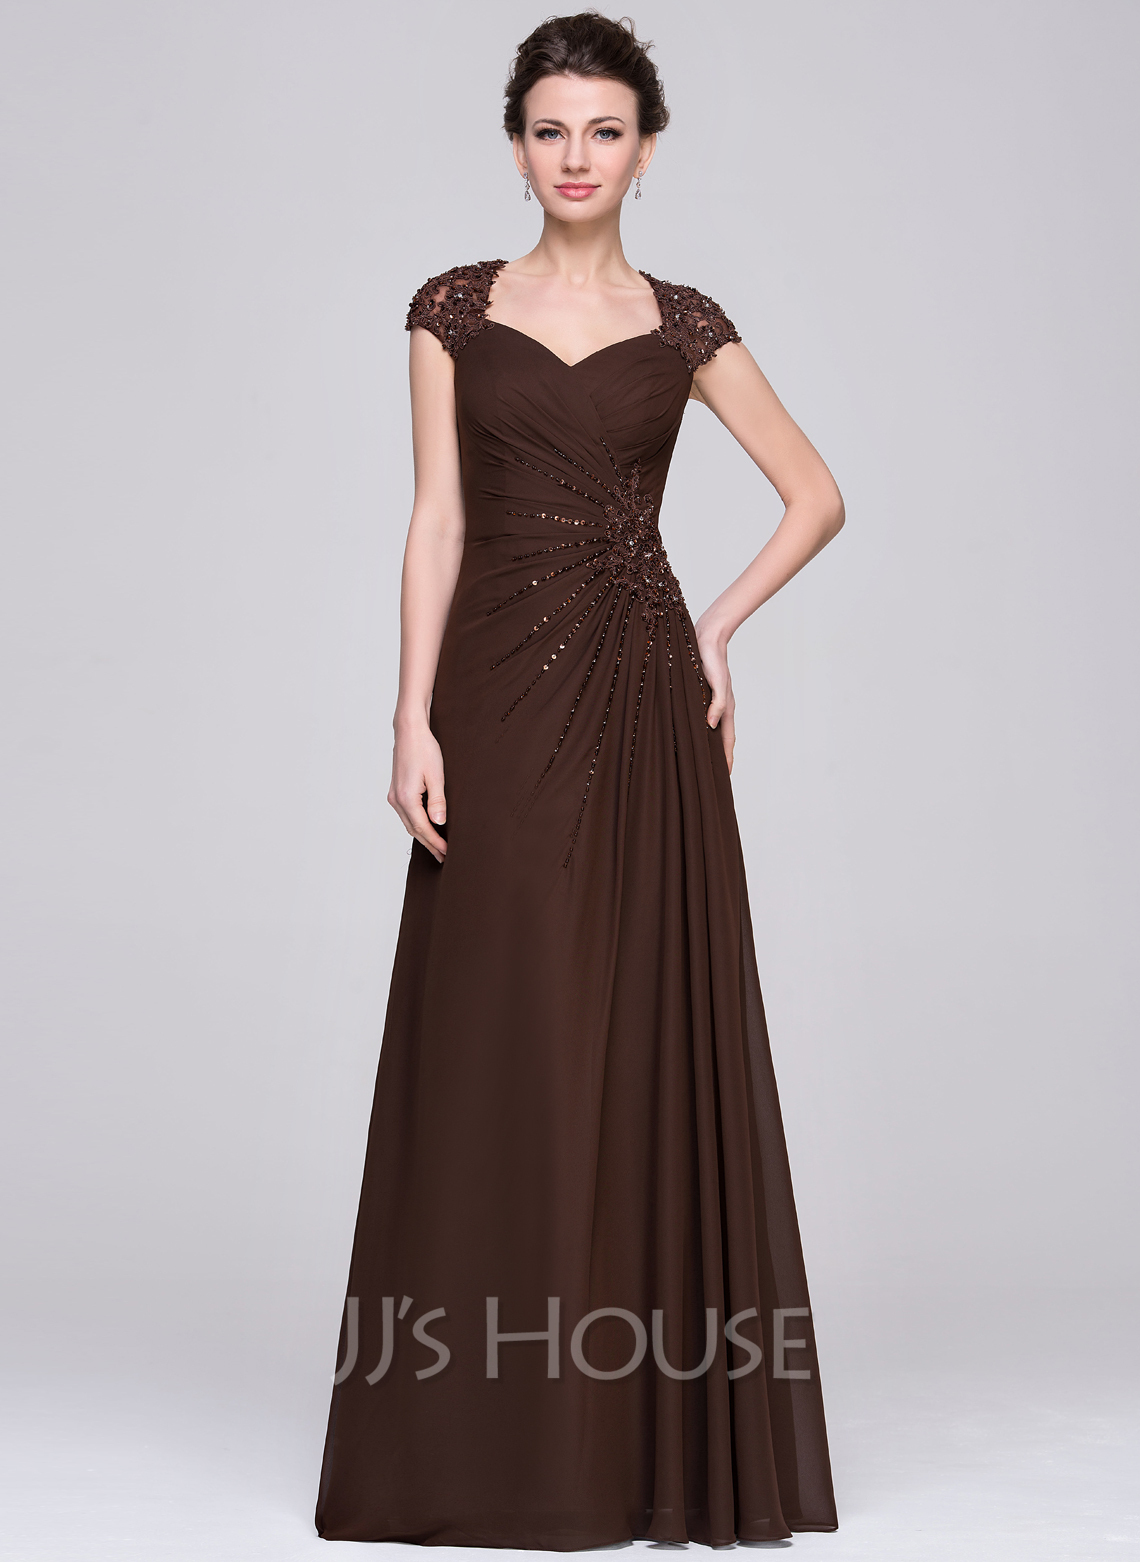 A-Line Sweetheart Floor-Length Chiffon Mother of the Bride Dress With Ruffle Lace Beading Sequins